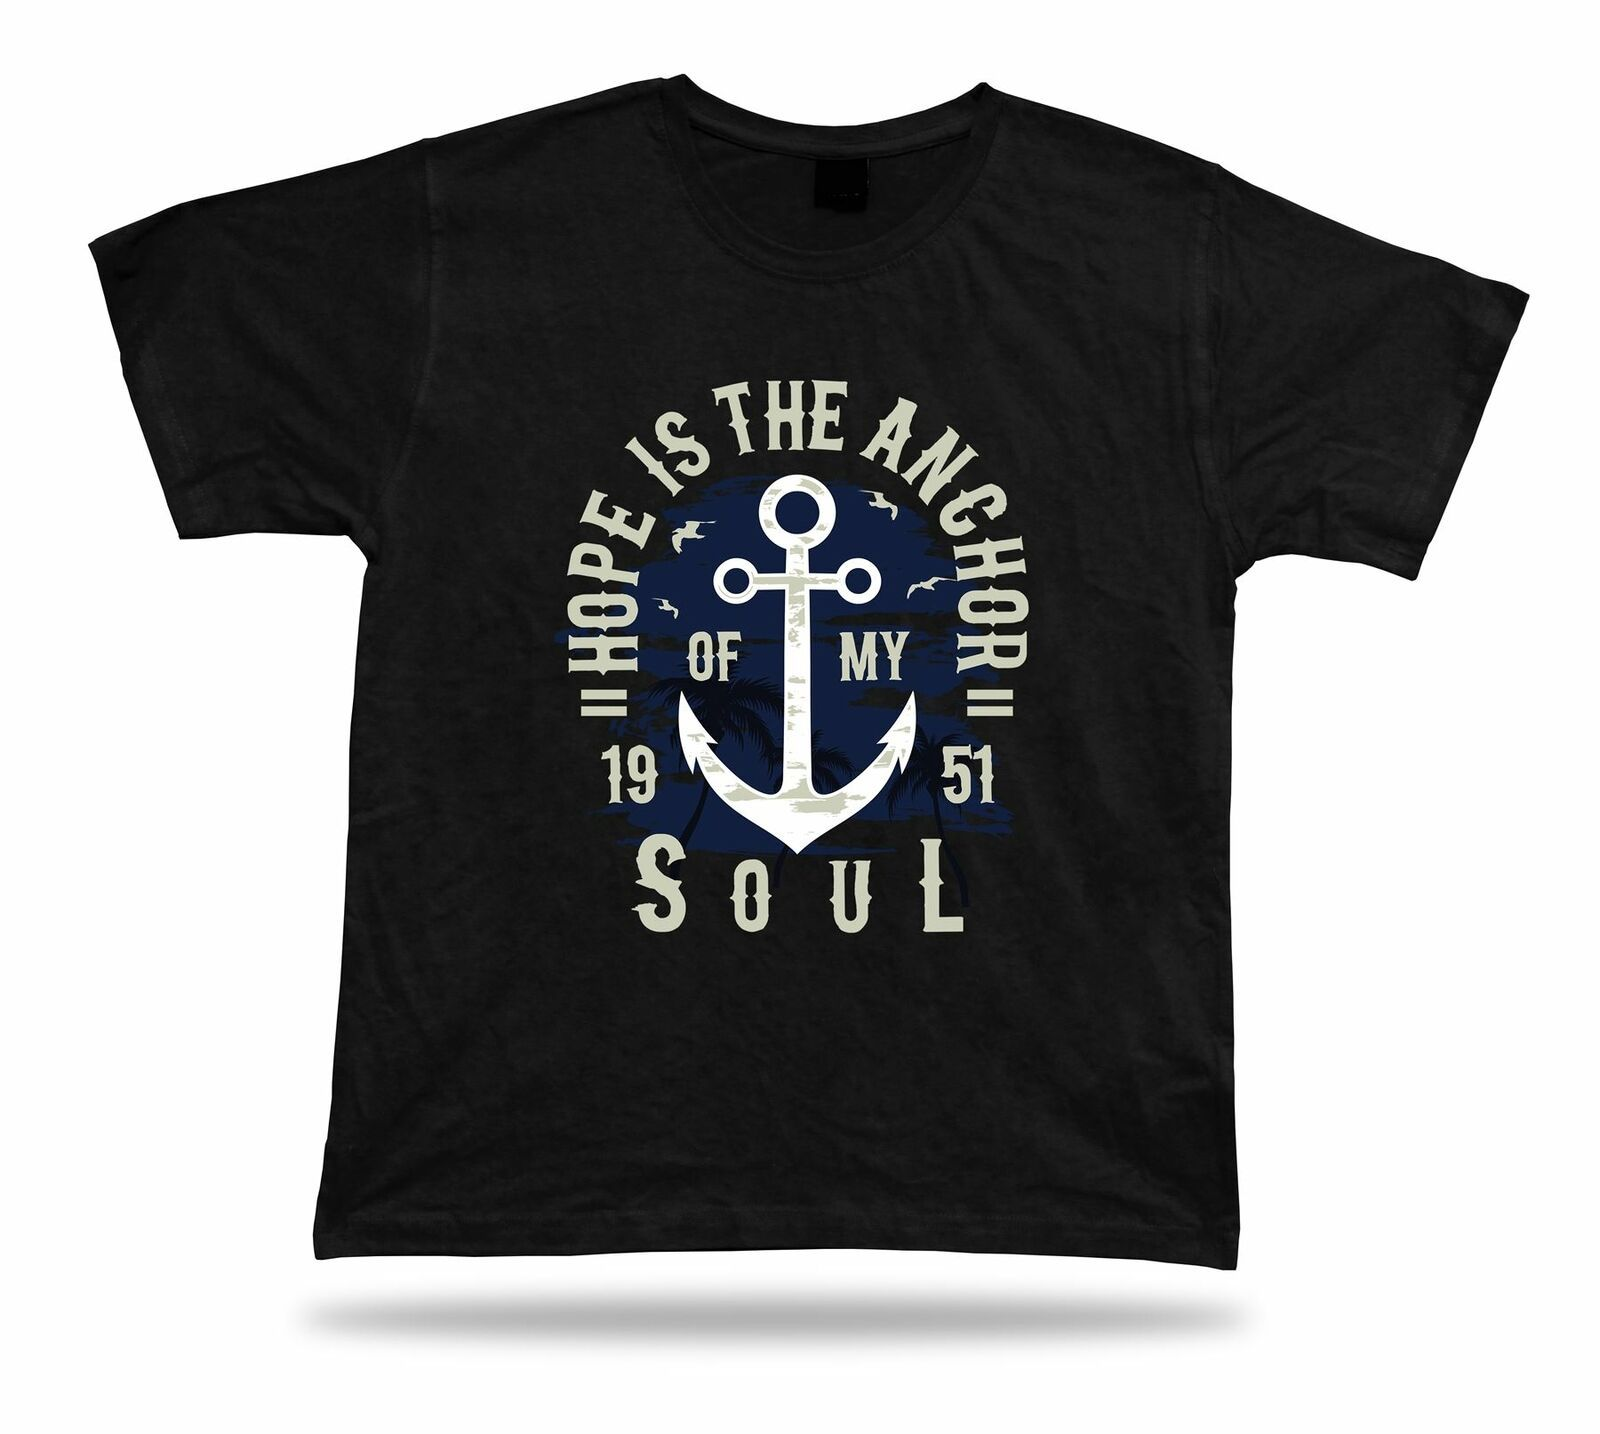 Primary image for Hope is the anchor of my soul awesome unique t shirt idea special gift tee